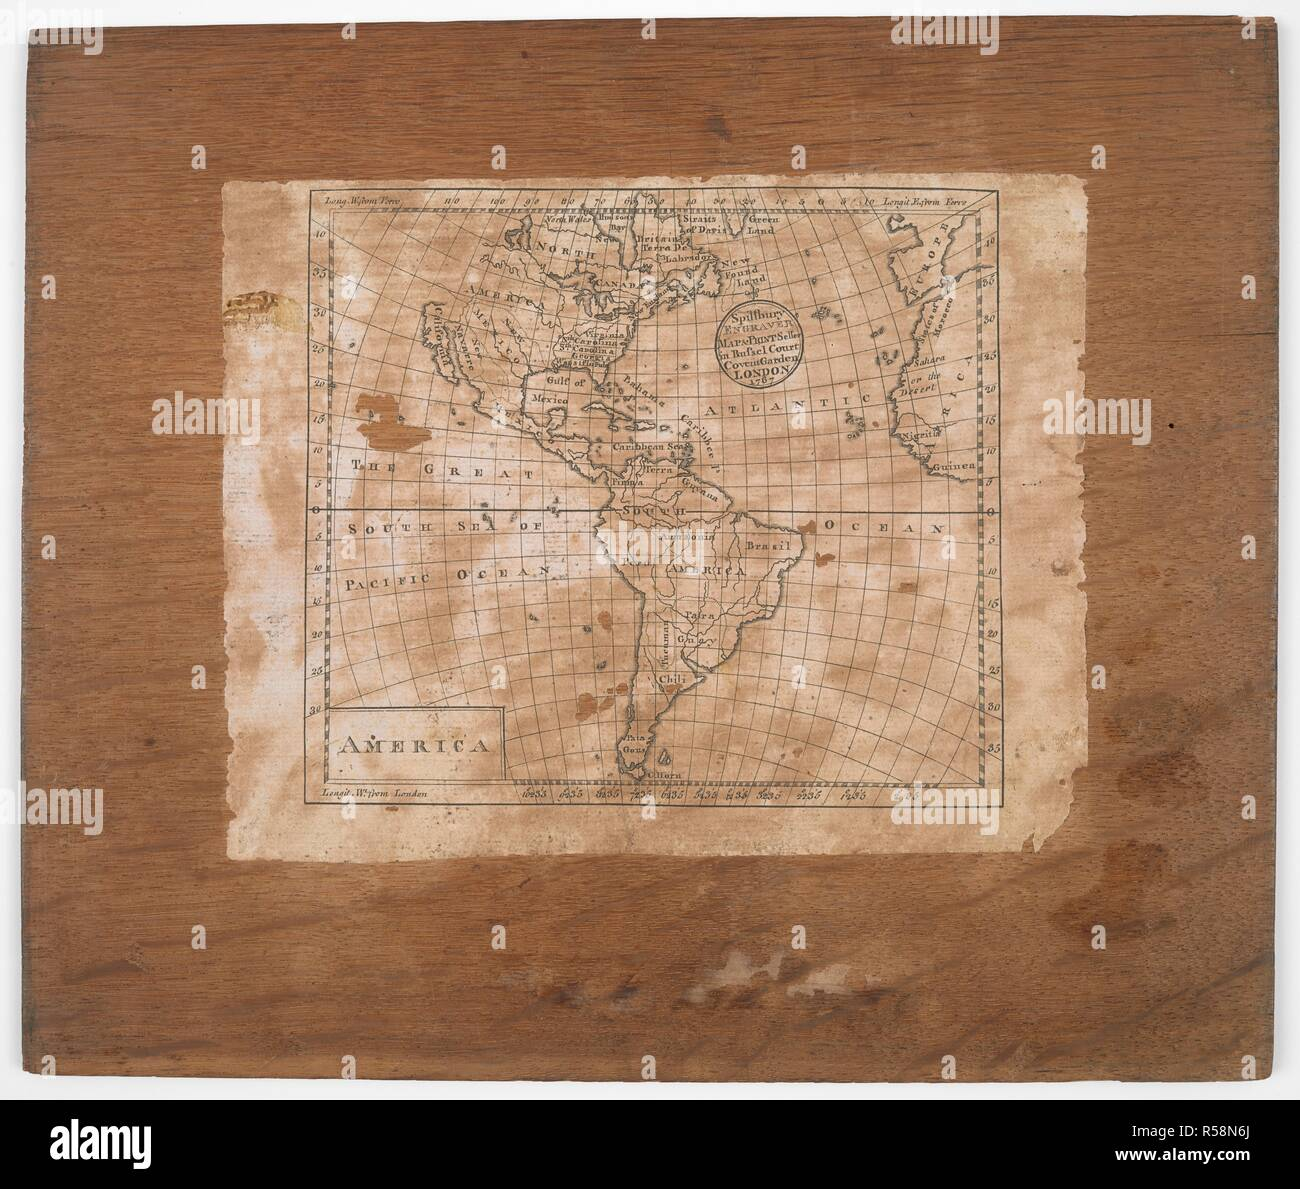 Map Of America Jigsaw.Map On The Lid Of A Box Containing A Jigsaw Puzzle North And South